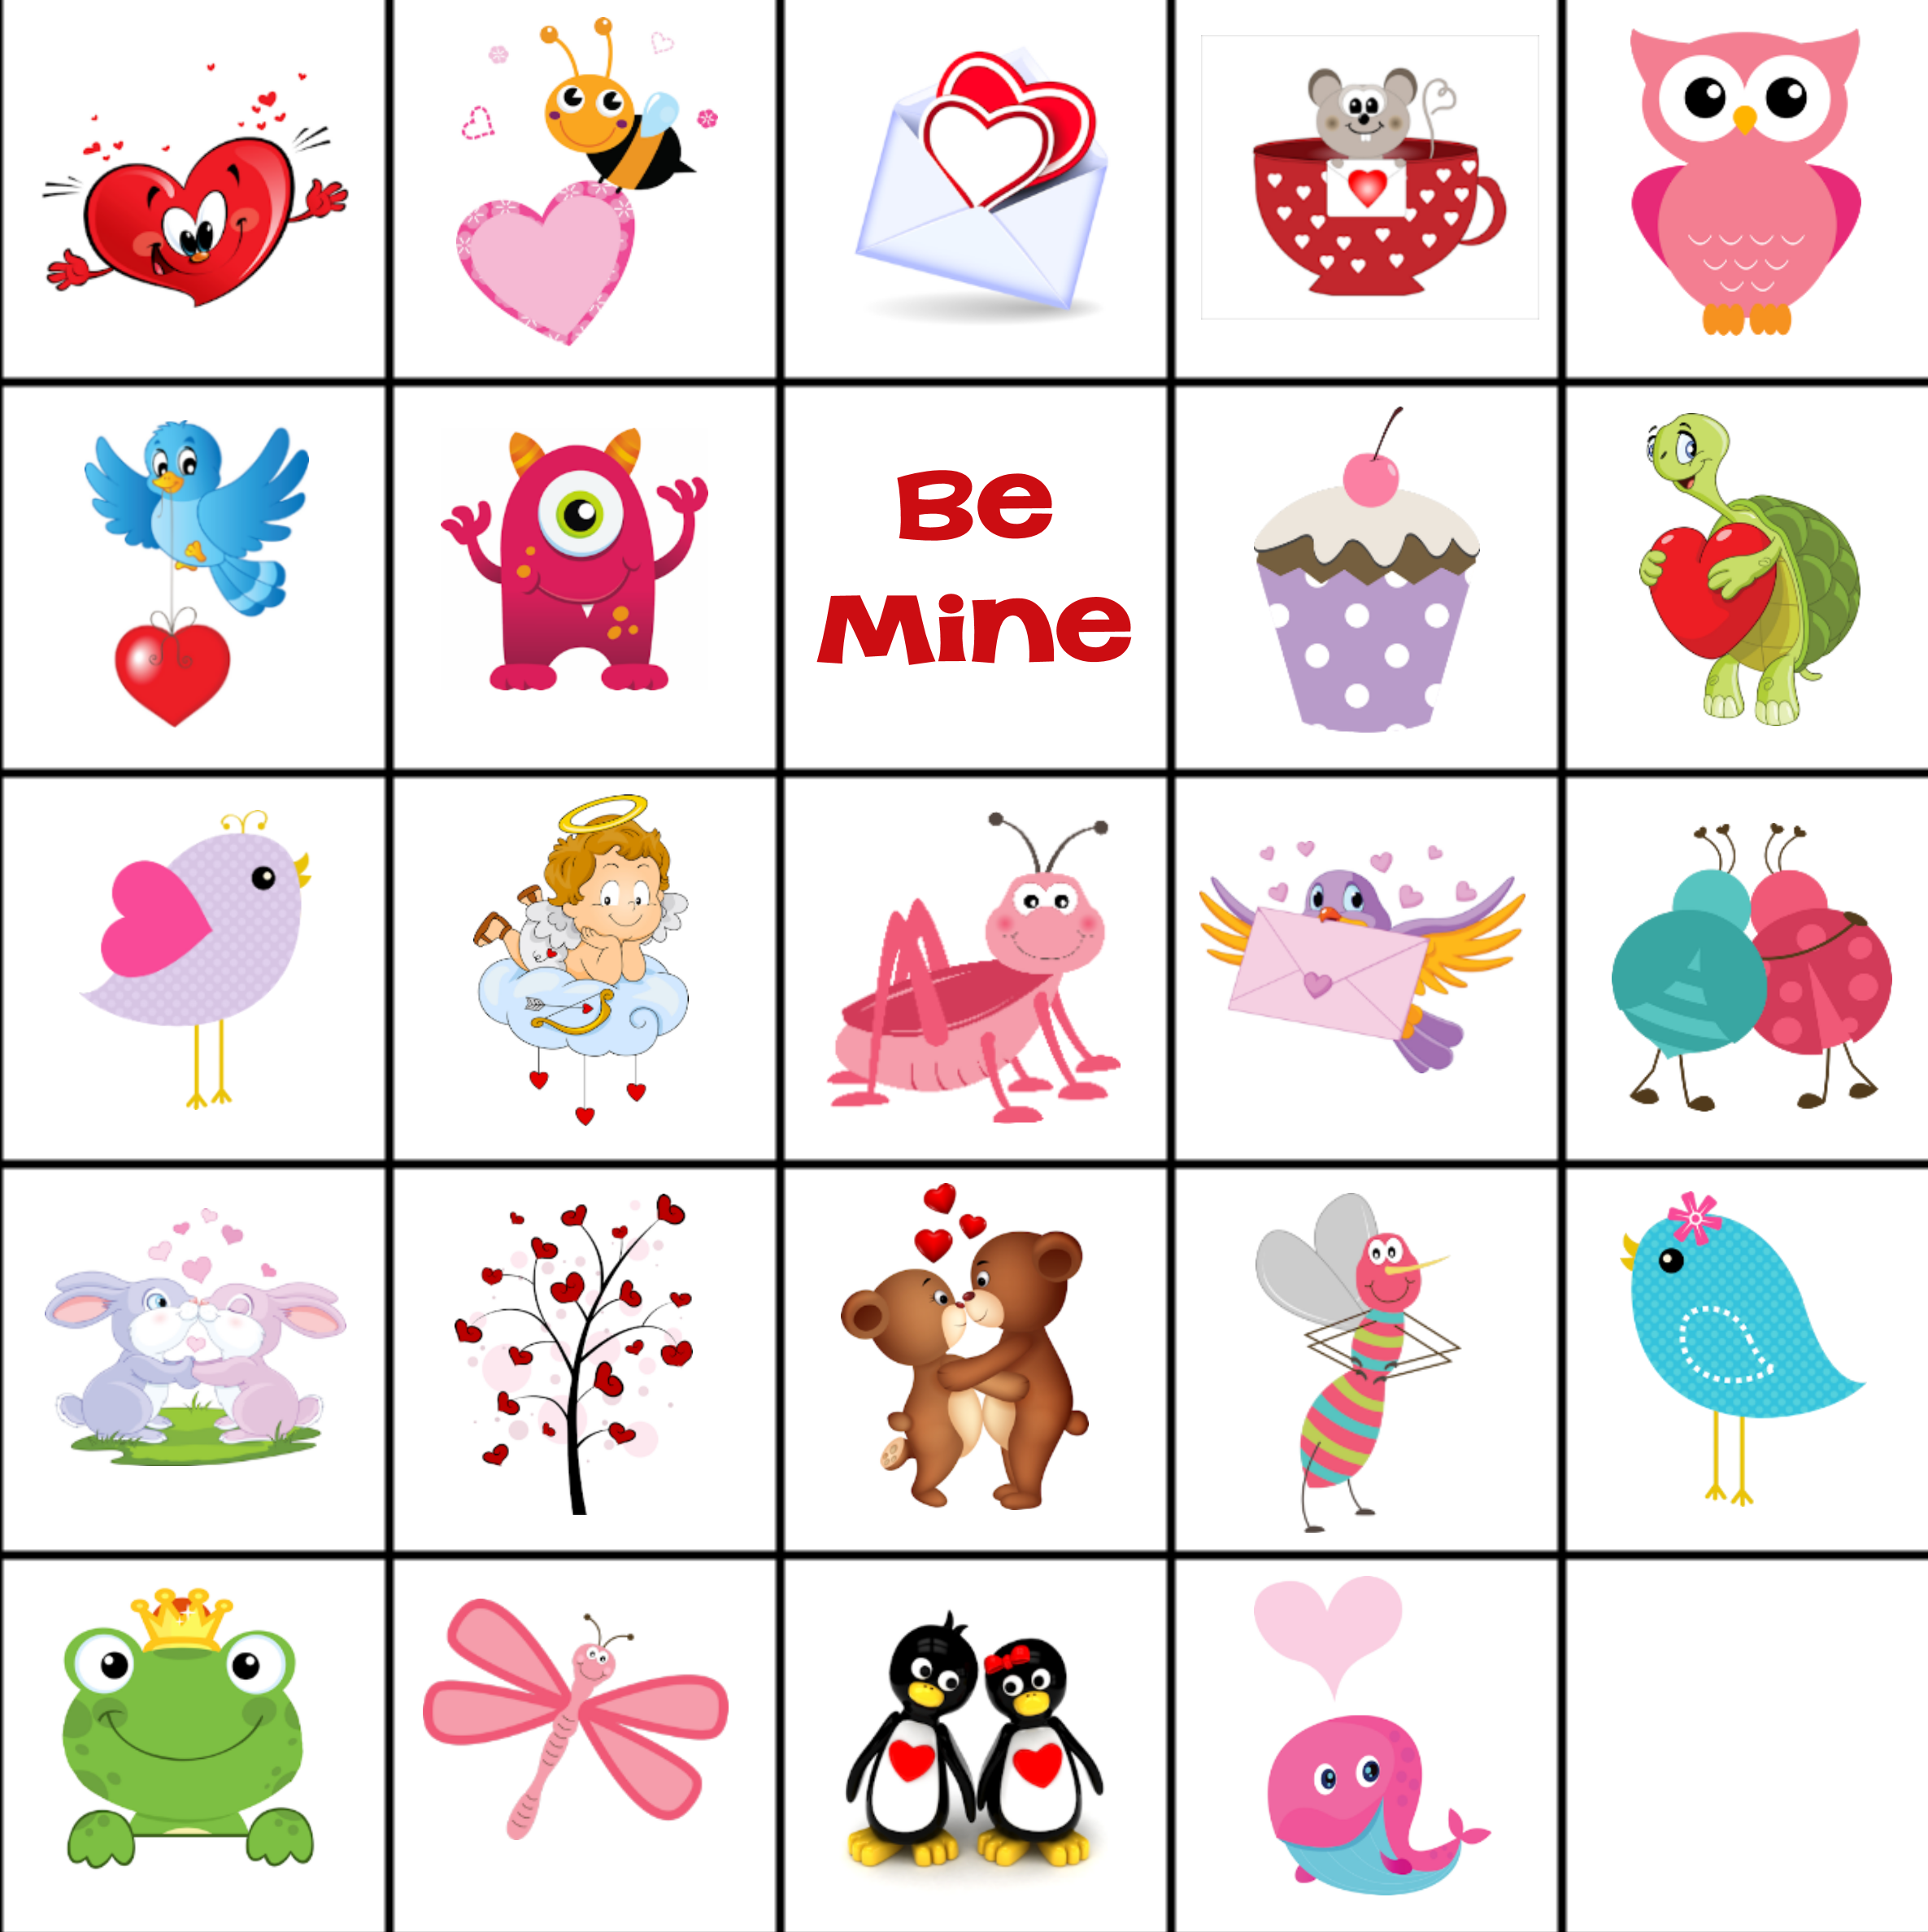 graphic regarding Printable Valentine Bingo Cards named No cost Printable Valentine Memory Match